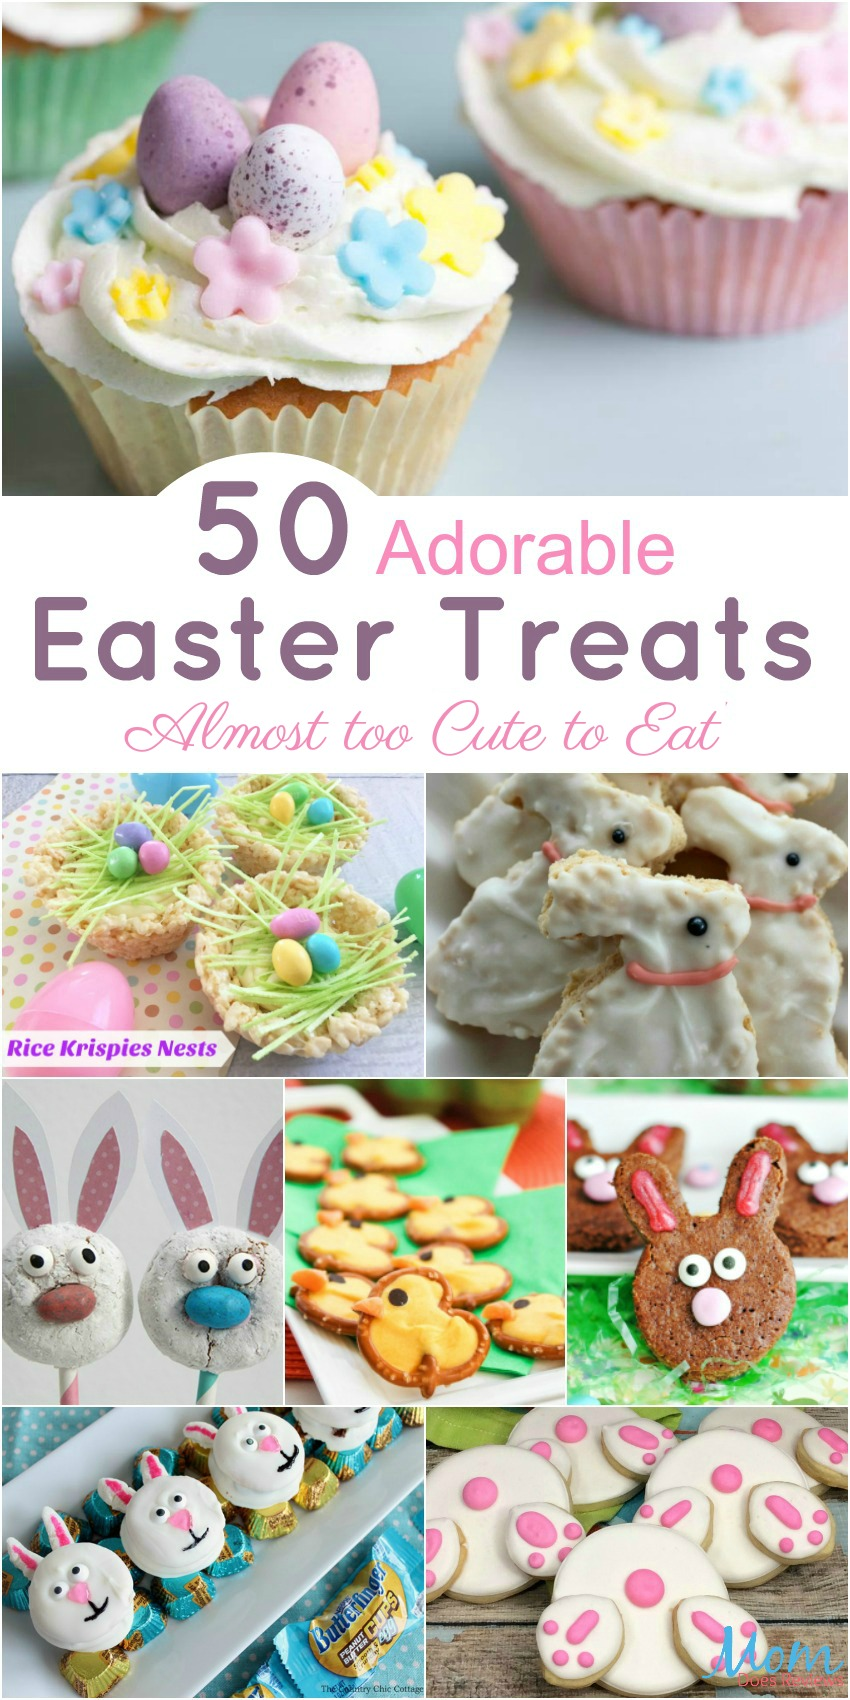 50 Adorable Easter Treats that are Almost to Cute to Eat banner